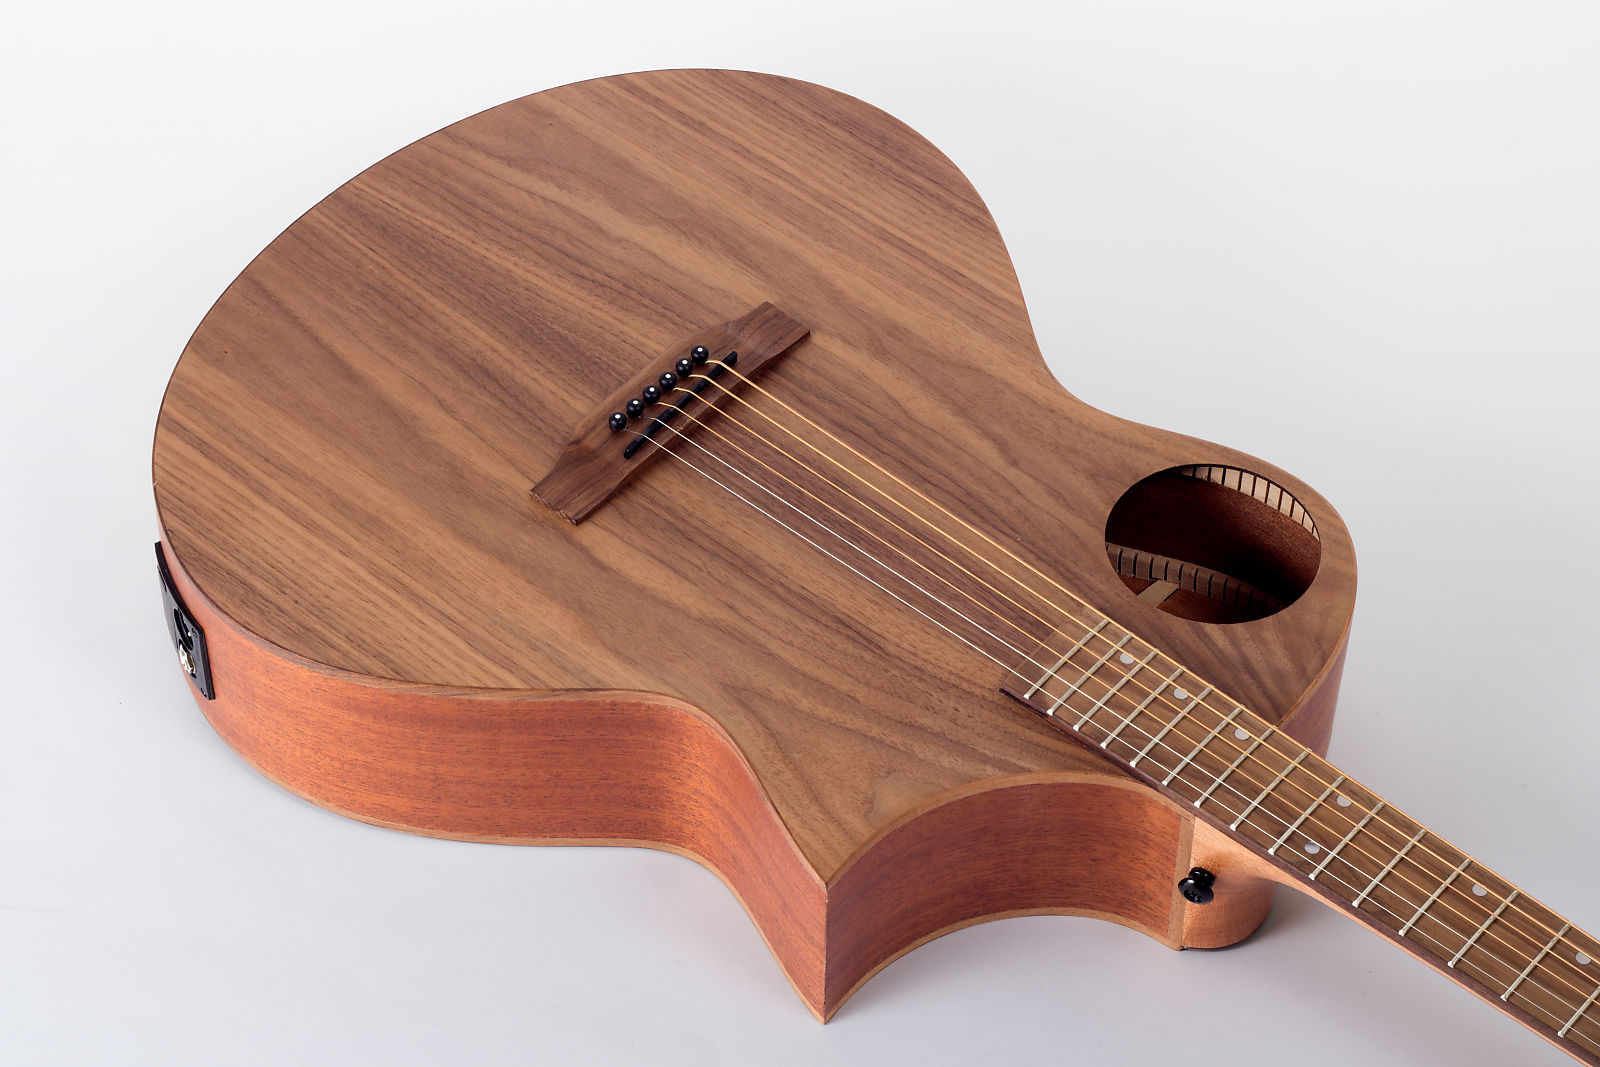 Lindo Neptune Se Black Walnut Electro Acoustic Guitar With Preamp Guitars & Basses